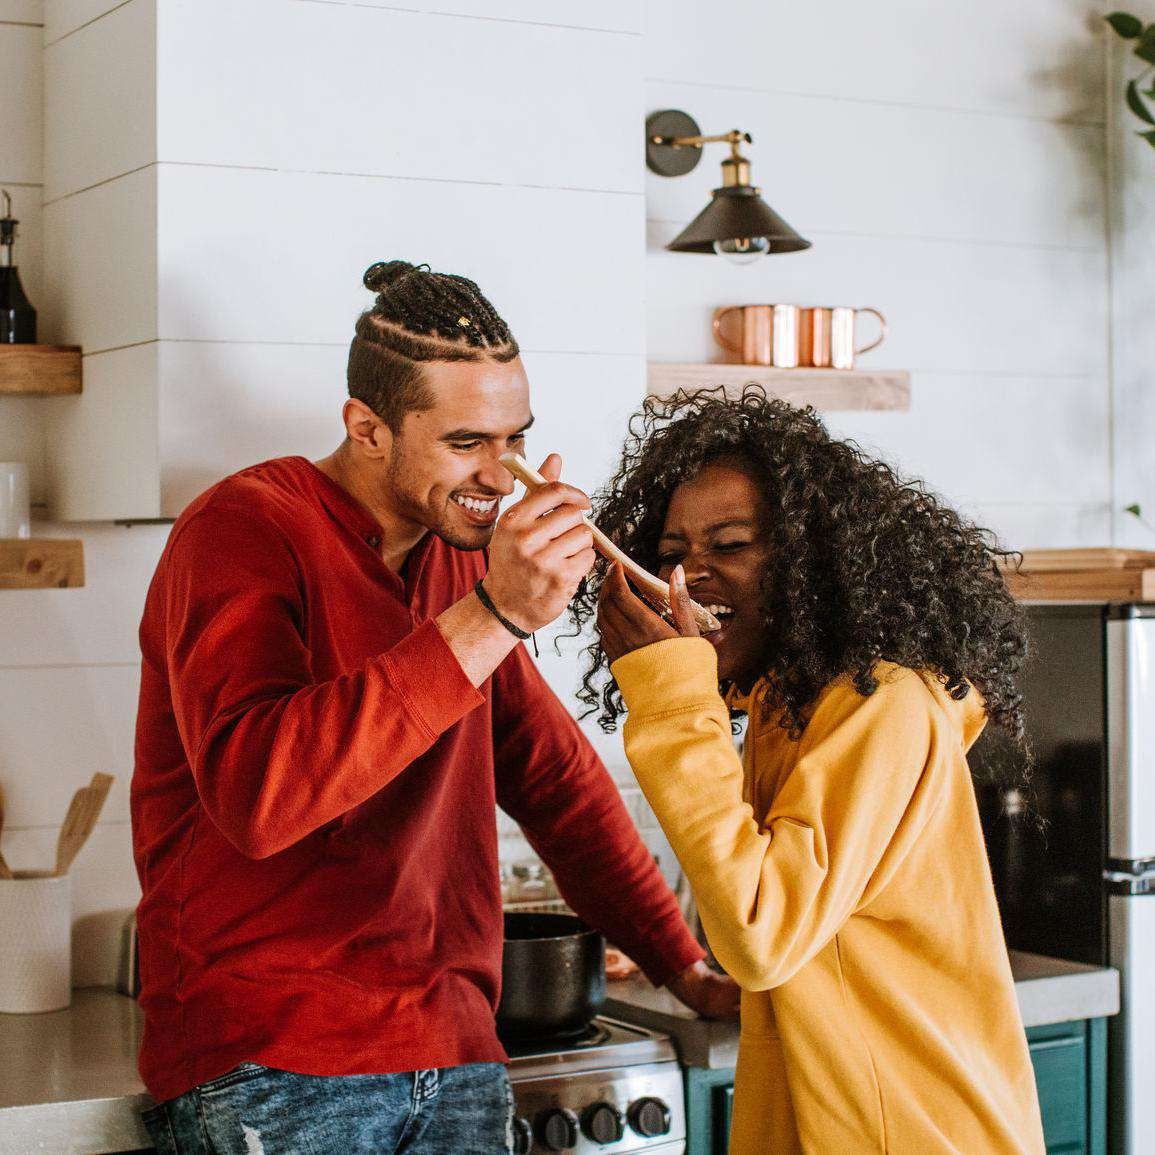 5 Healthy Habits to Develop With Your Partner